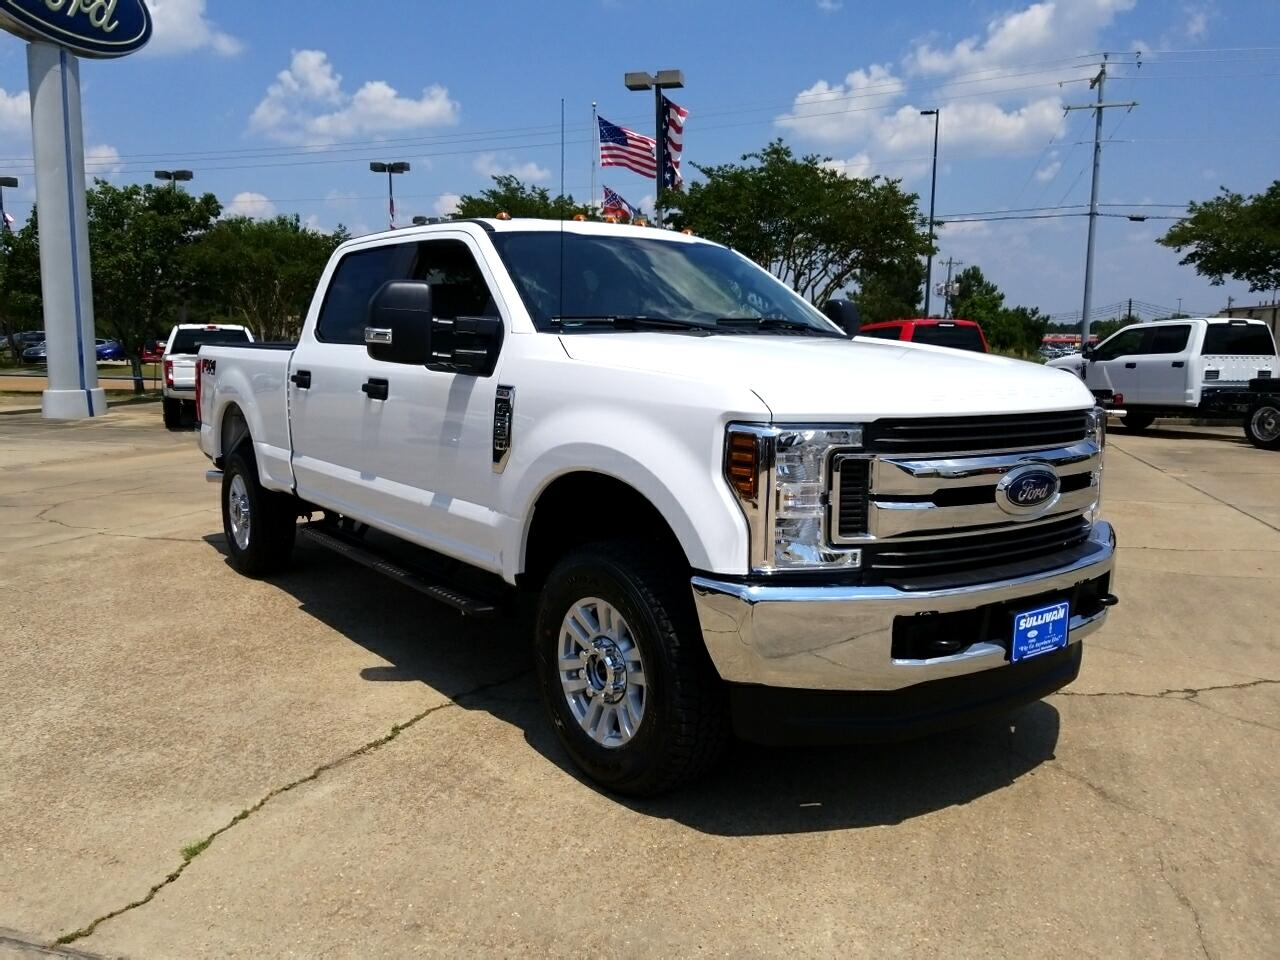 2018 Ford F-250 Crew Cab 4dr 152.2